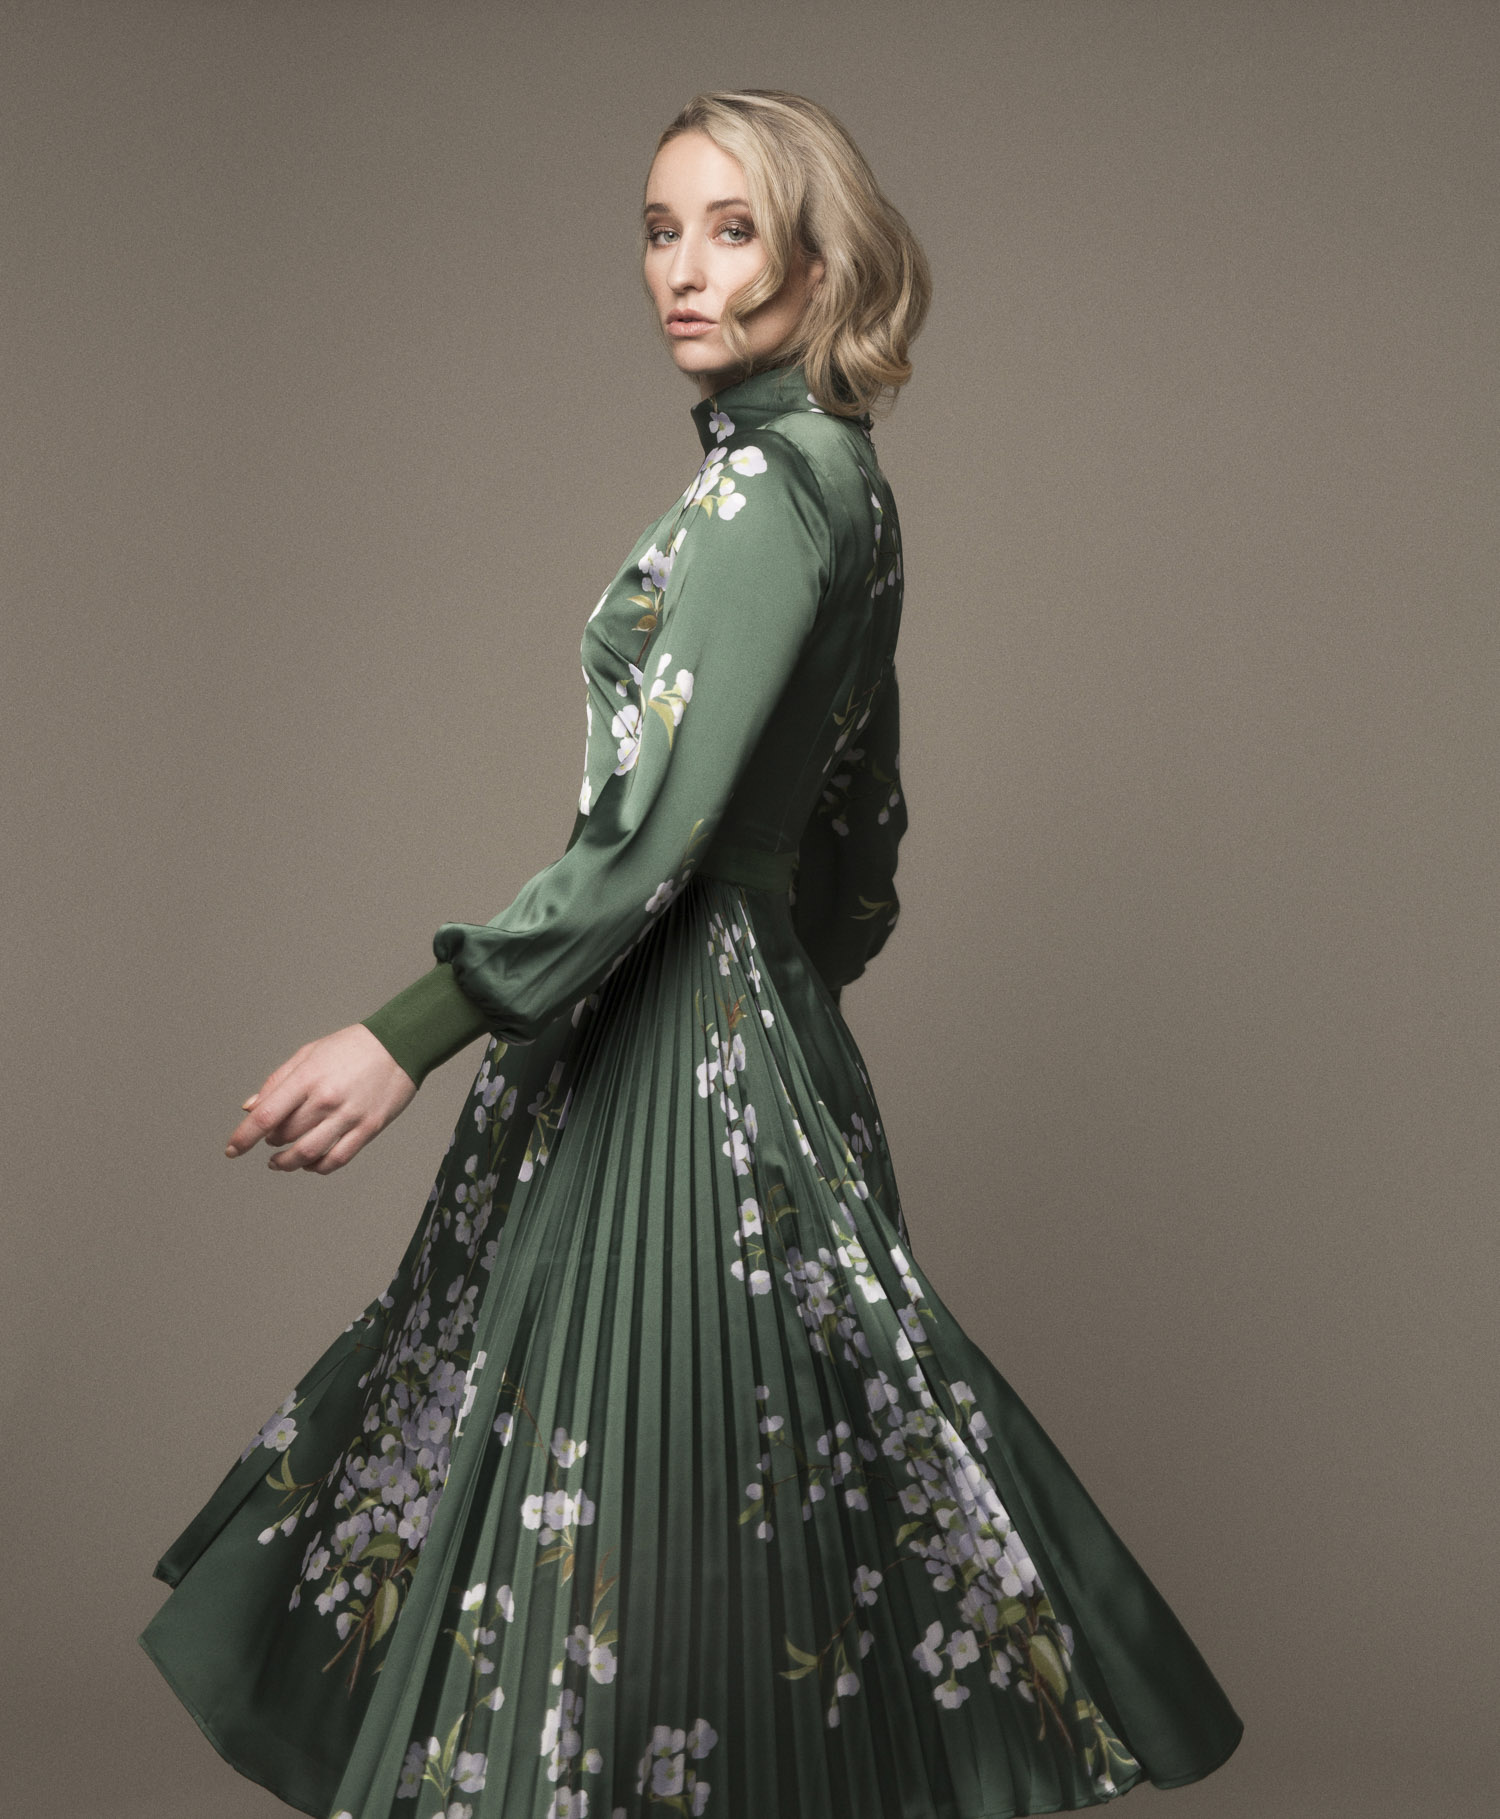 Model spinning in a green Ted Baker dress